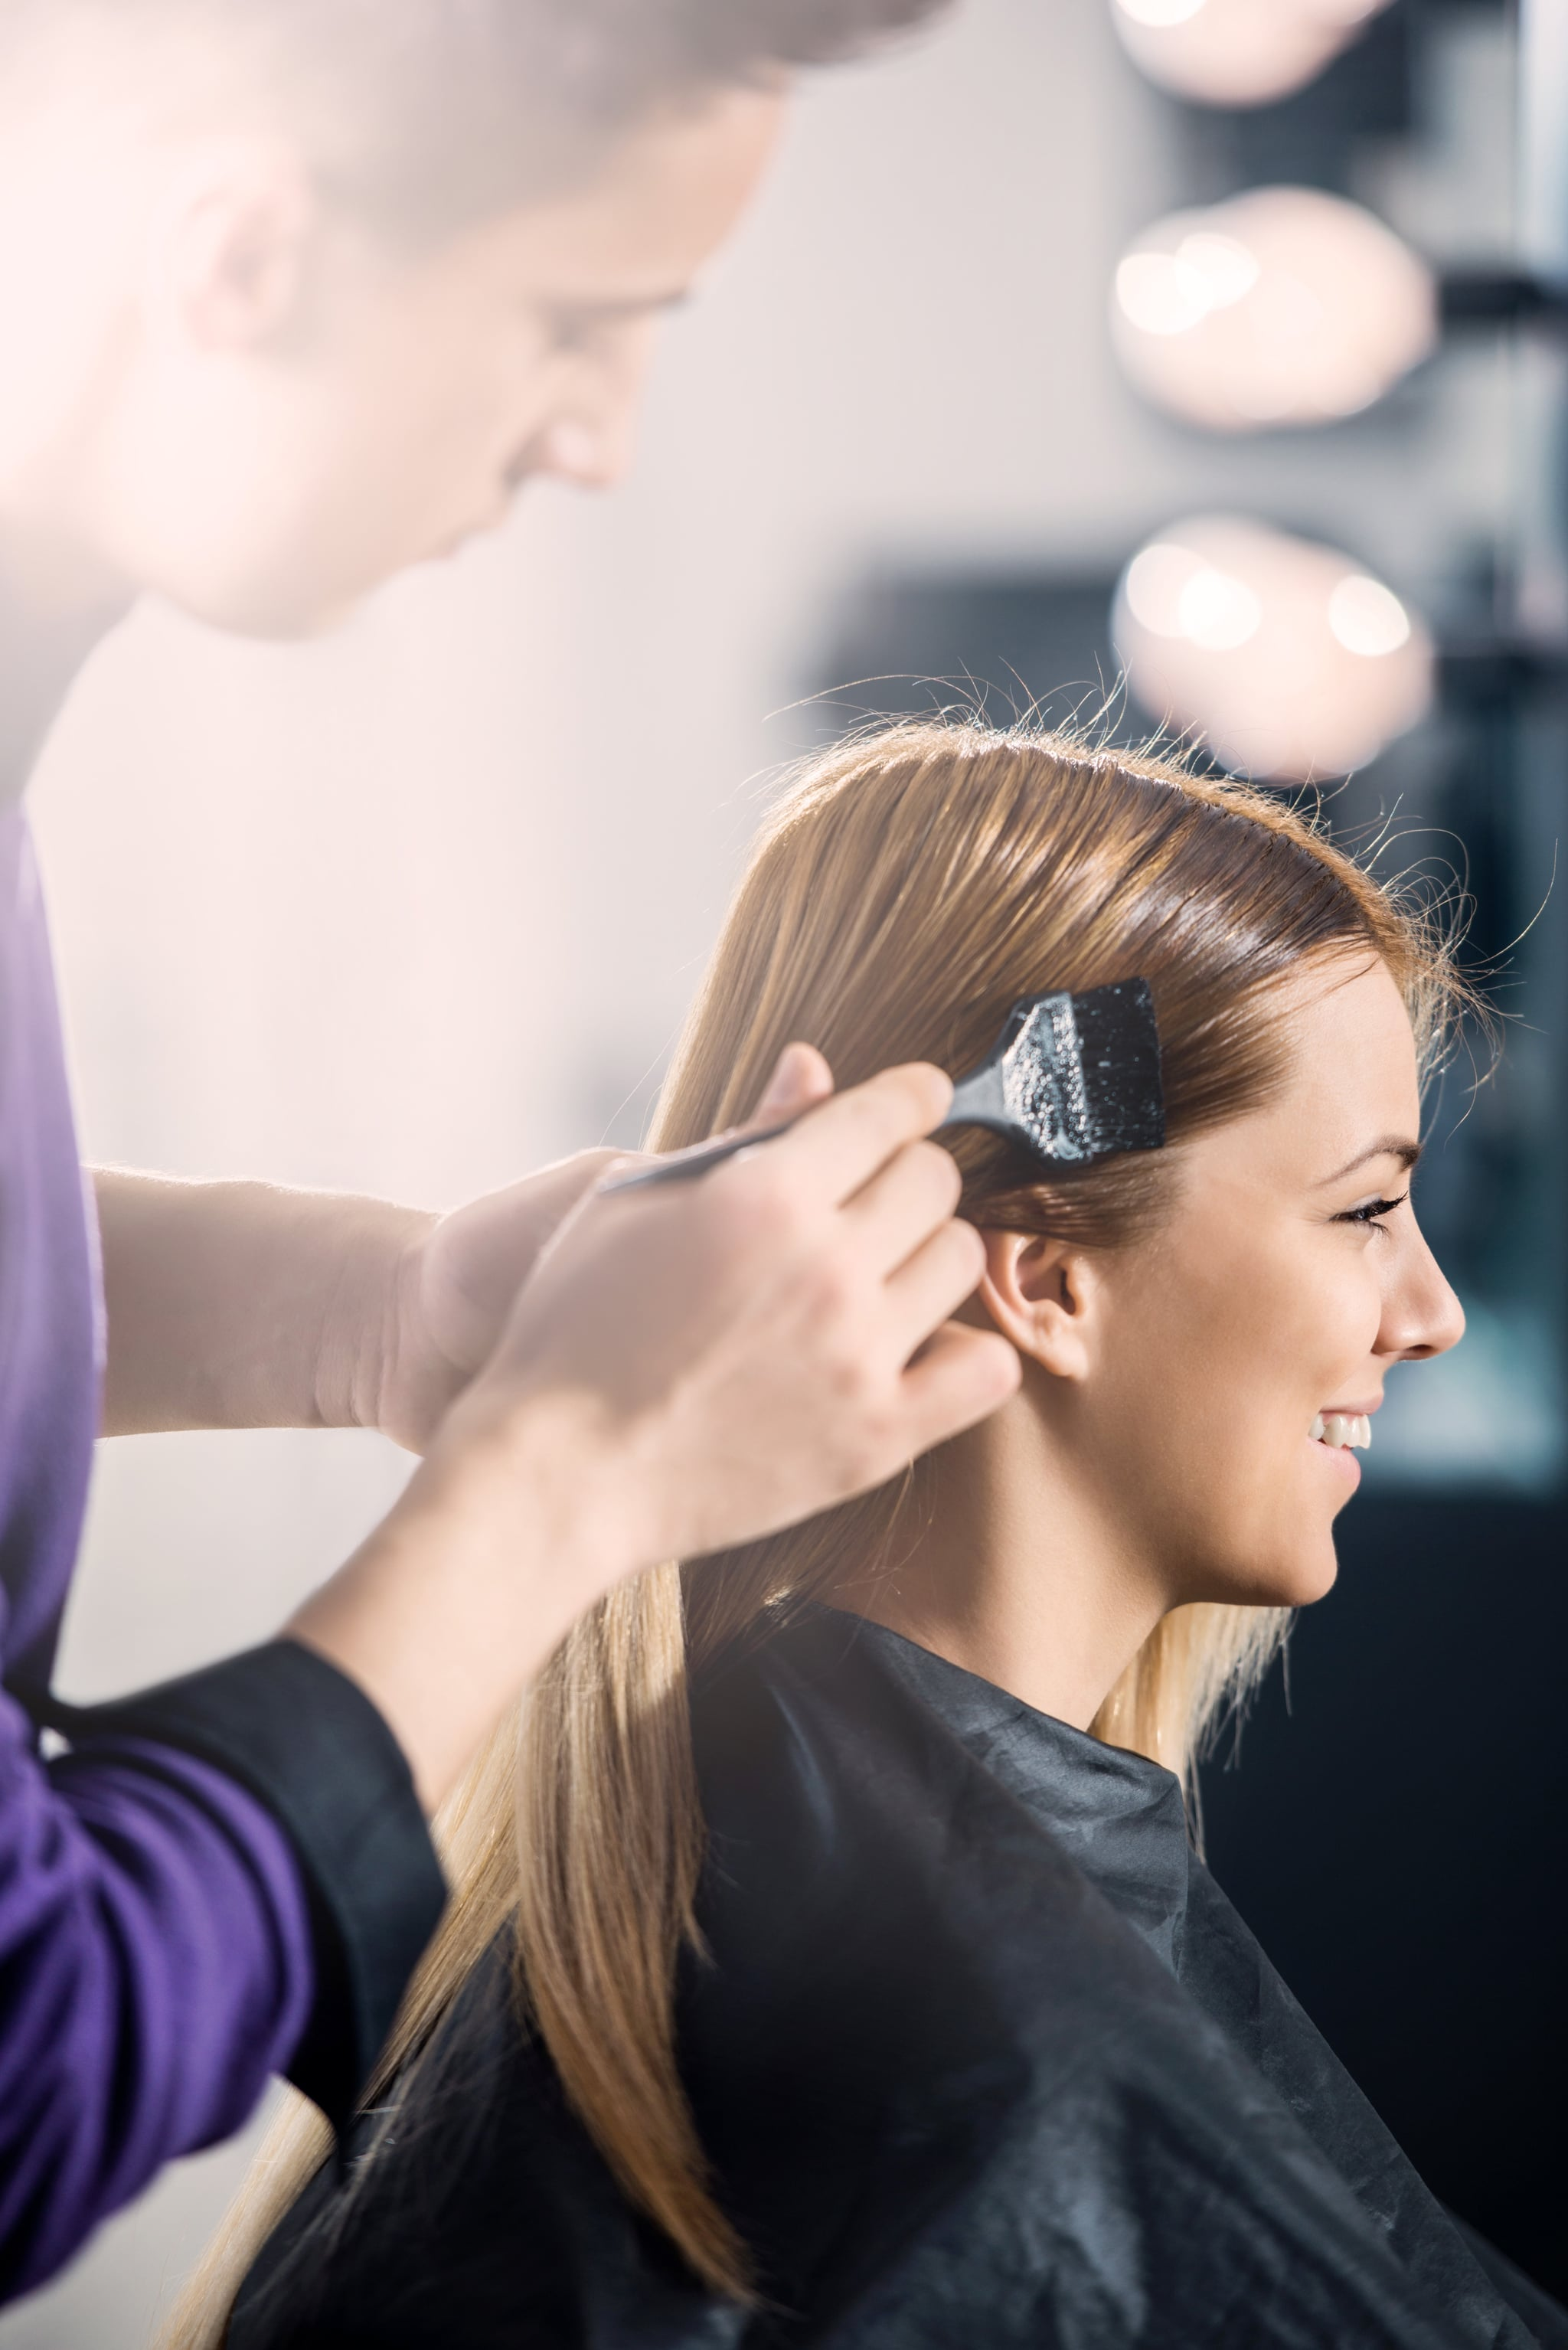 Young woman dyeing hair at the hairdresser's.